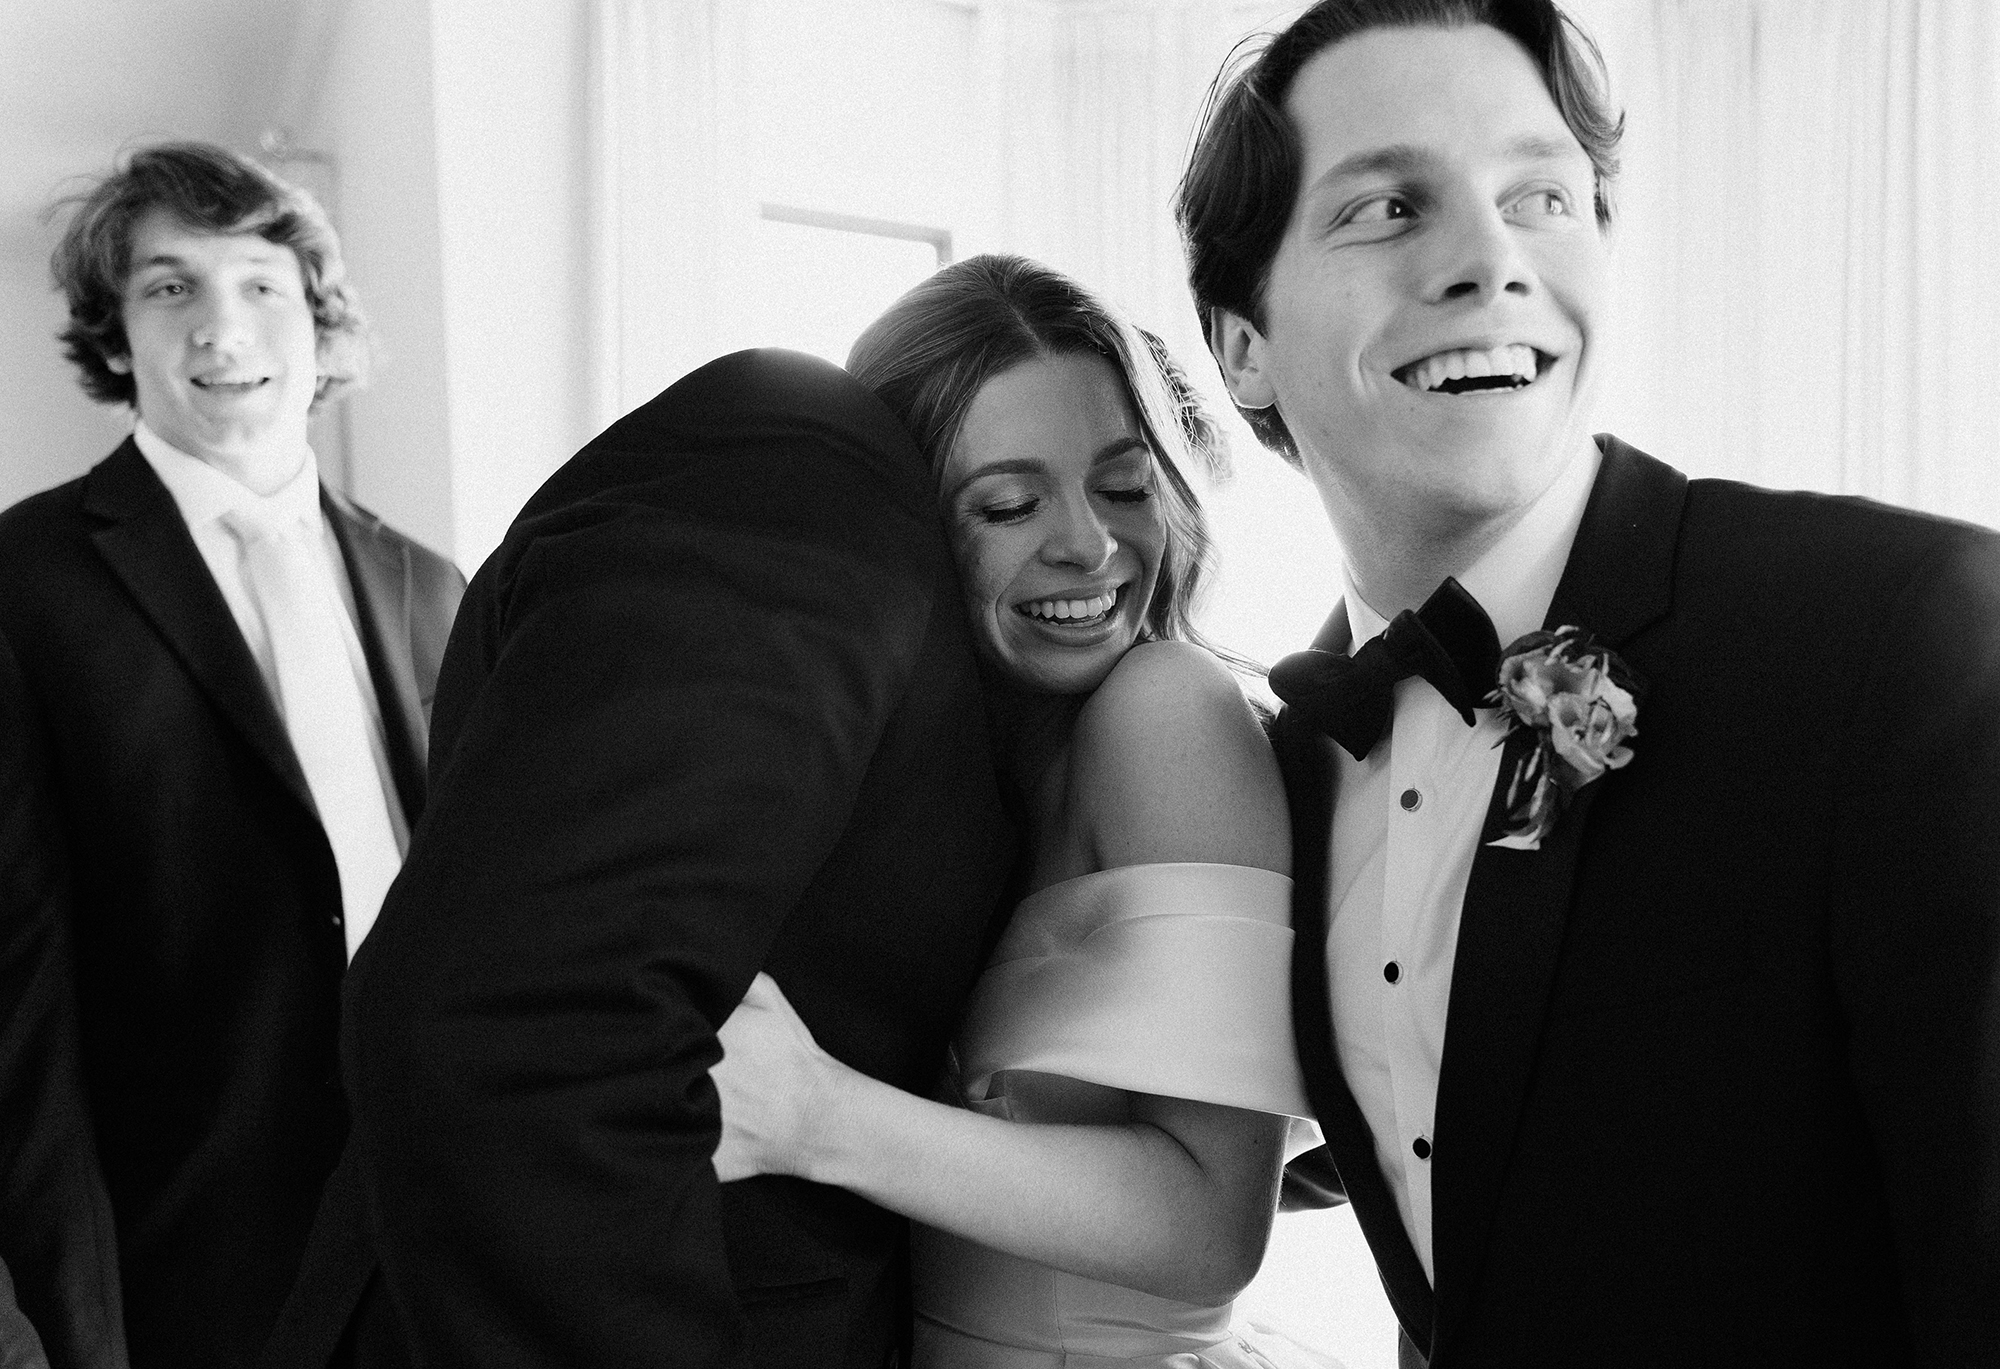 The brides hugs one of the groomsmen and smiles.